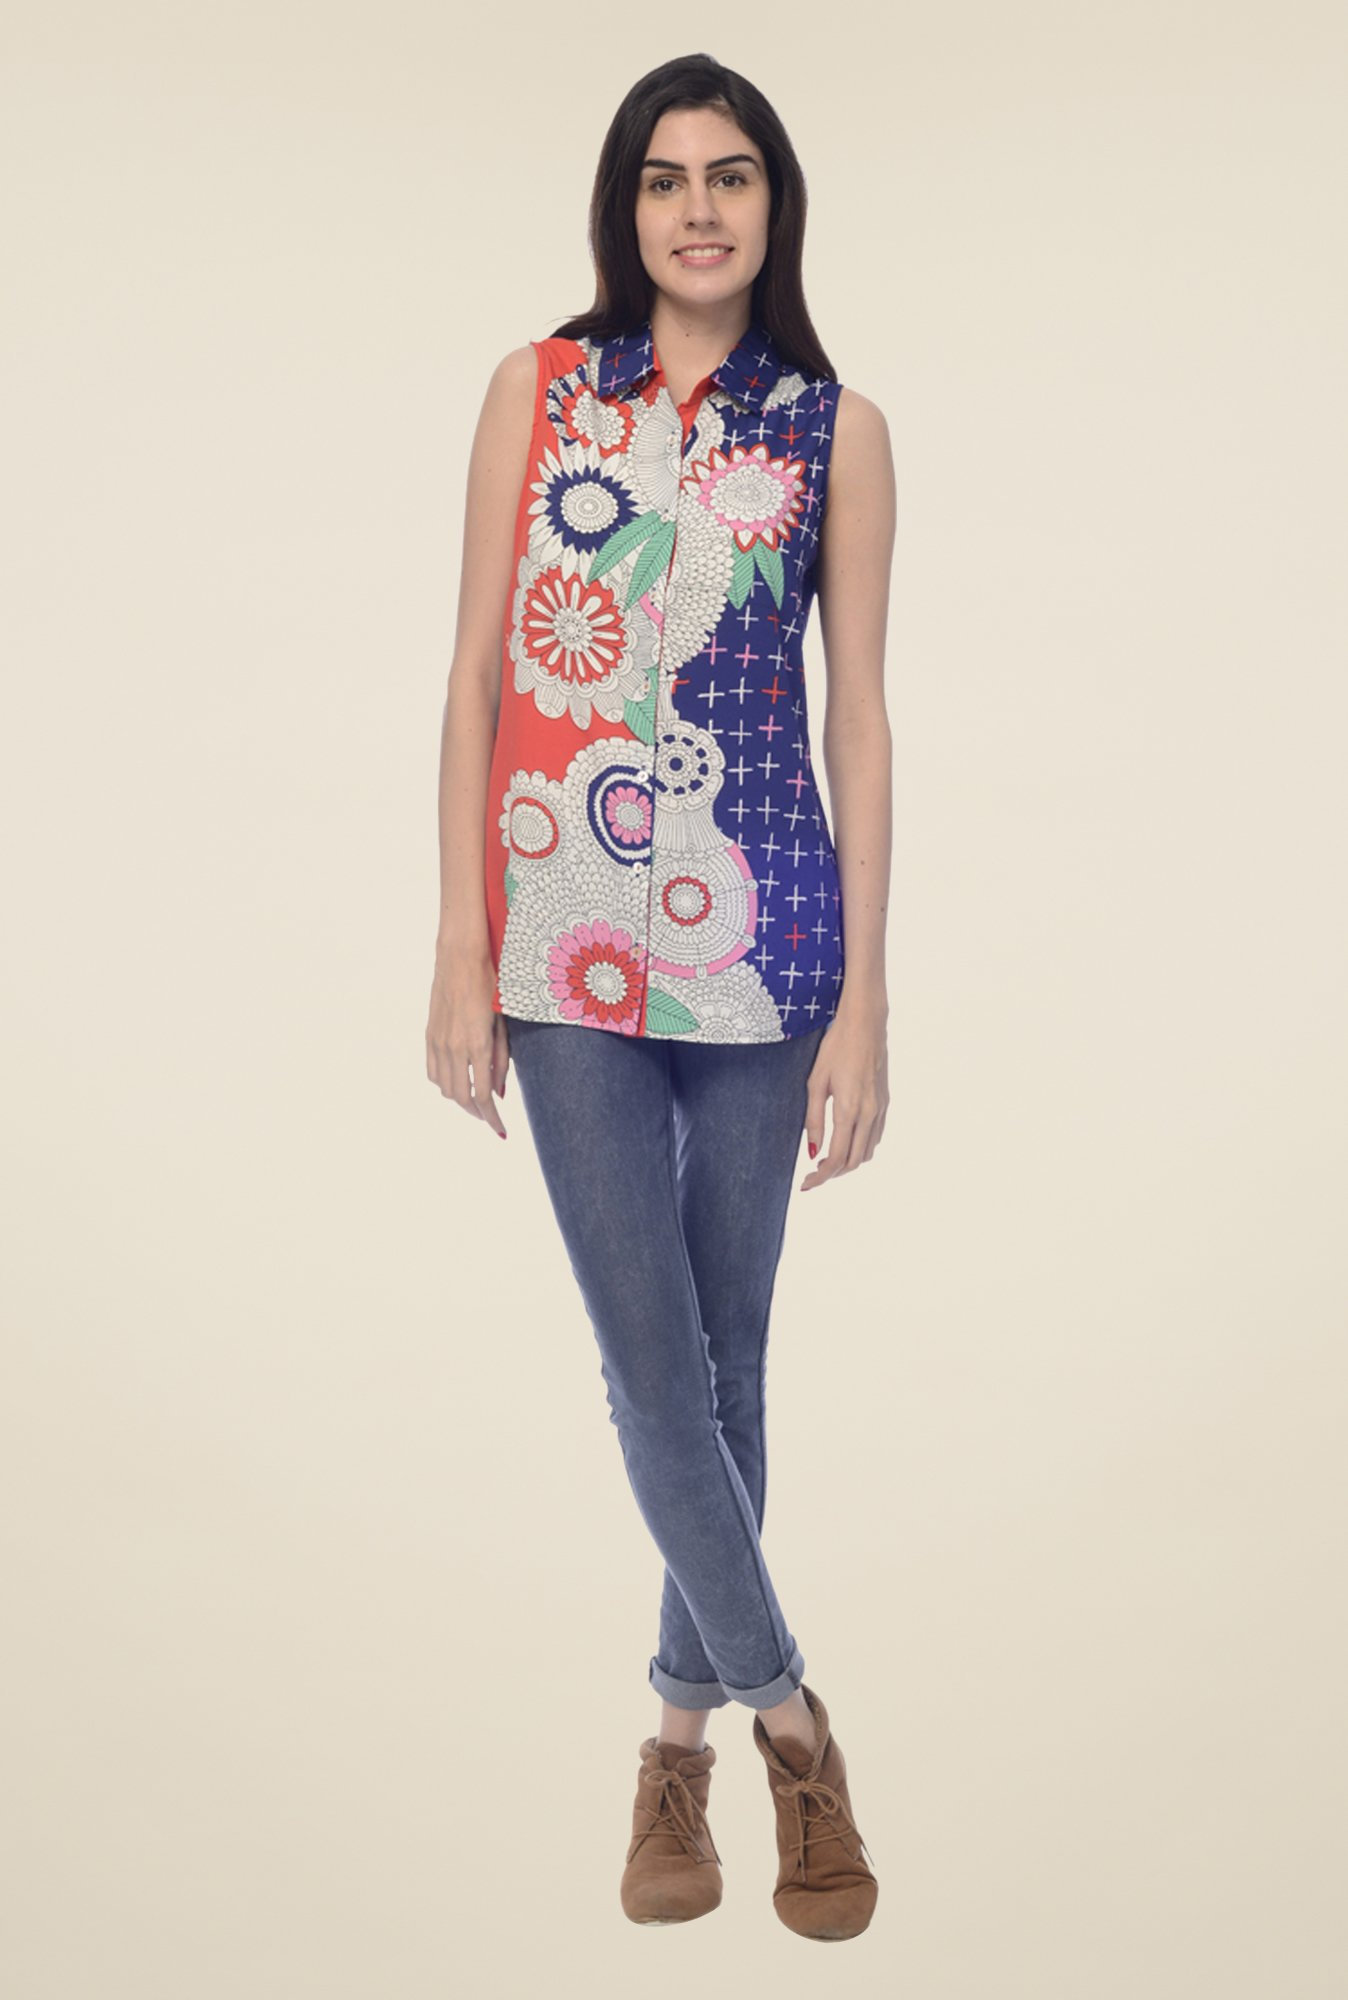 Desi Belle Multicolor Floral Print Shirt